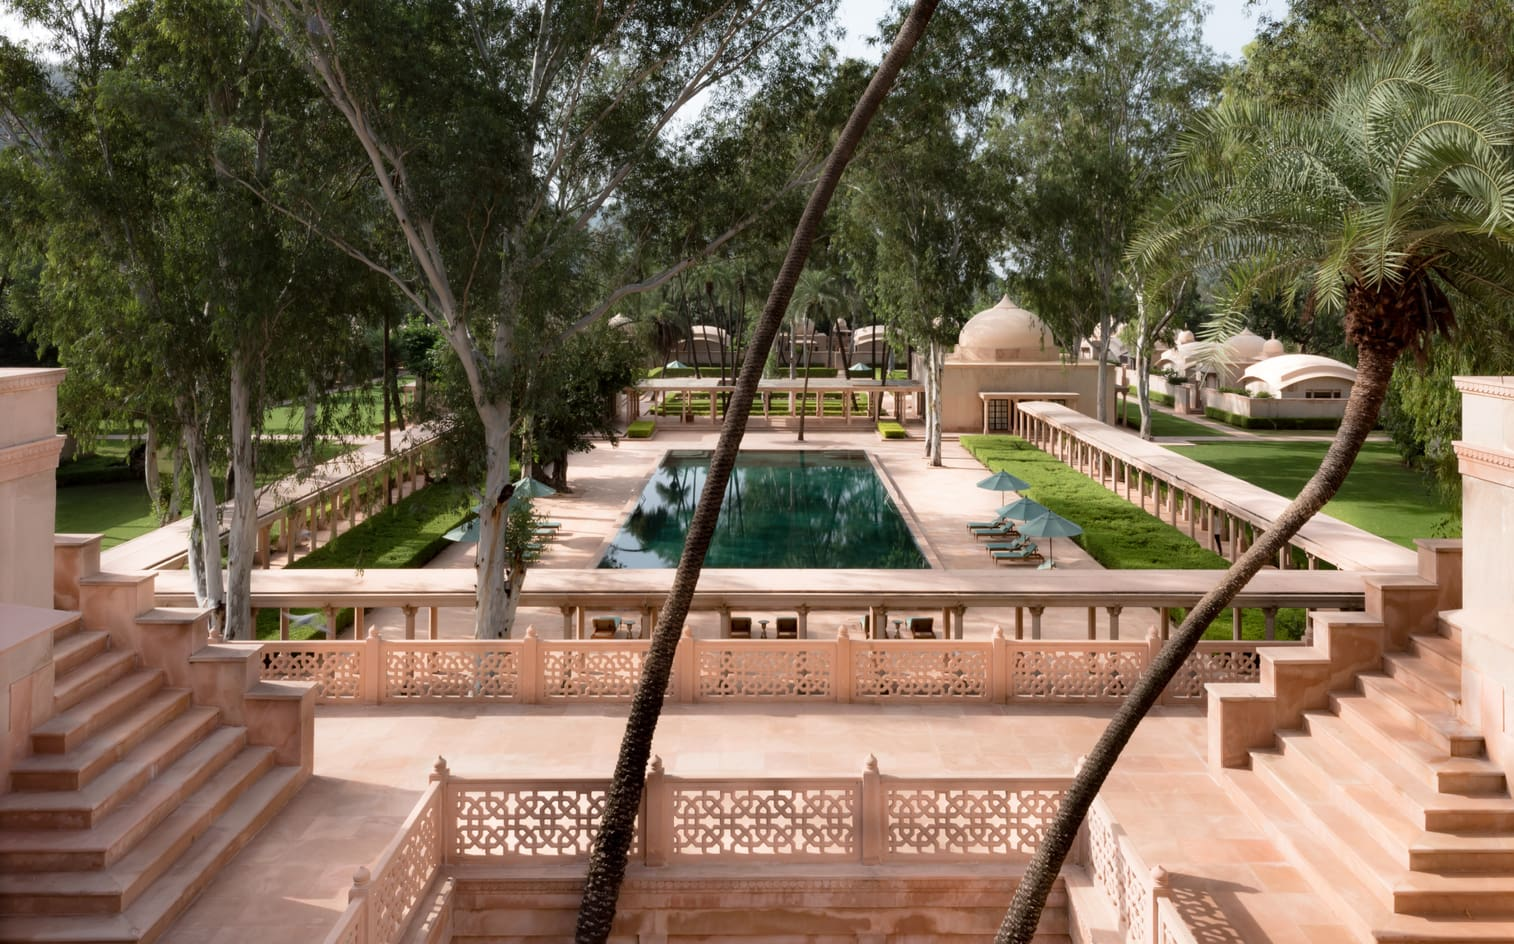 The luxurious Amanbagh hotel in Rajasthan, North India. Perfect to relax in a rural setting